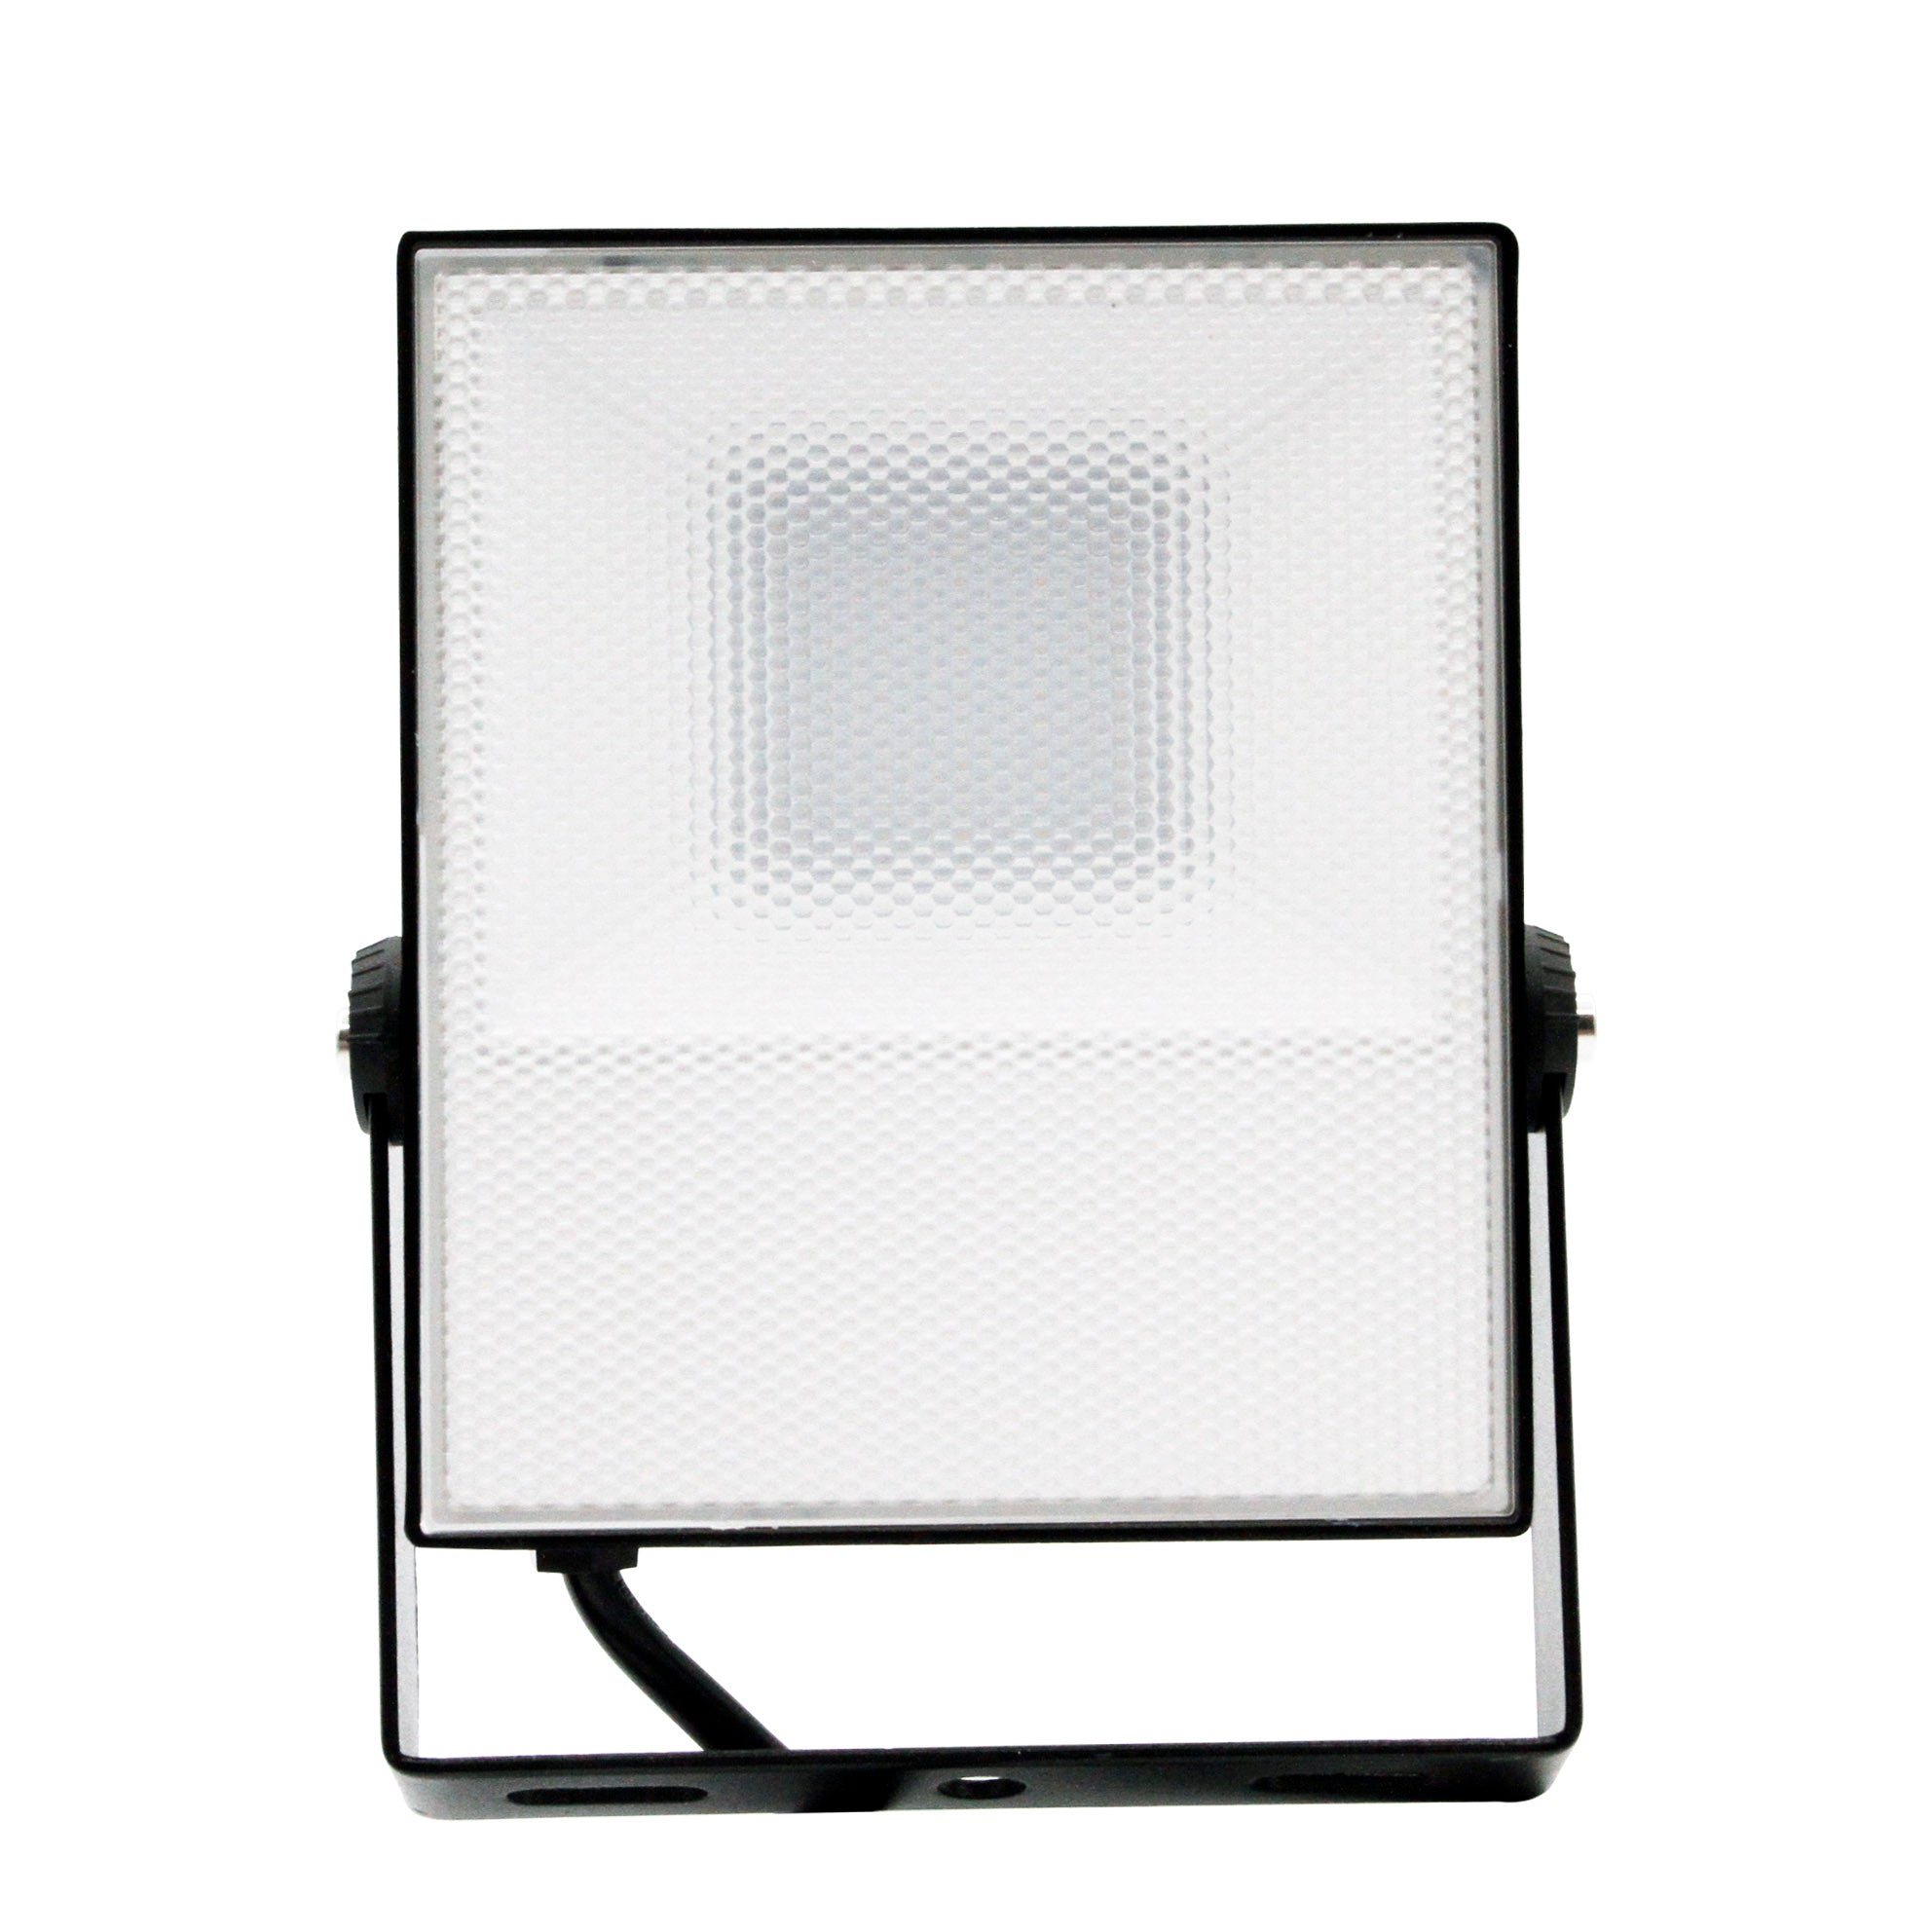 LED Pad Flood Light 30W, 120-277V, 2700LM, 4000K, Cool White  - Kunckle - Consavvy